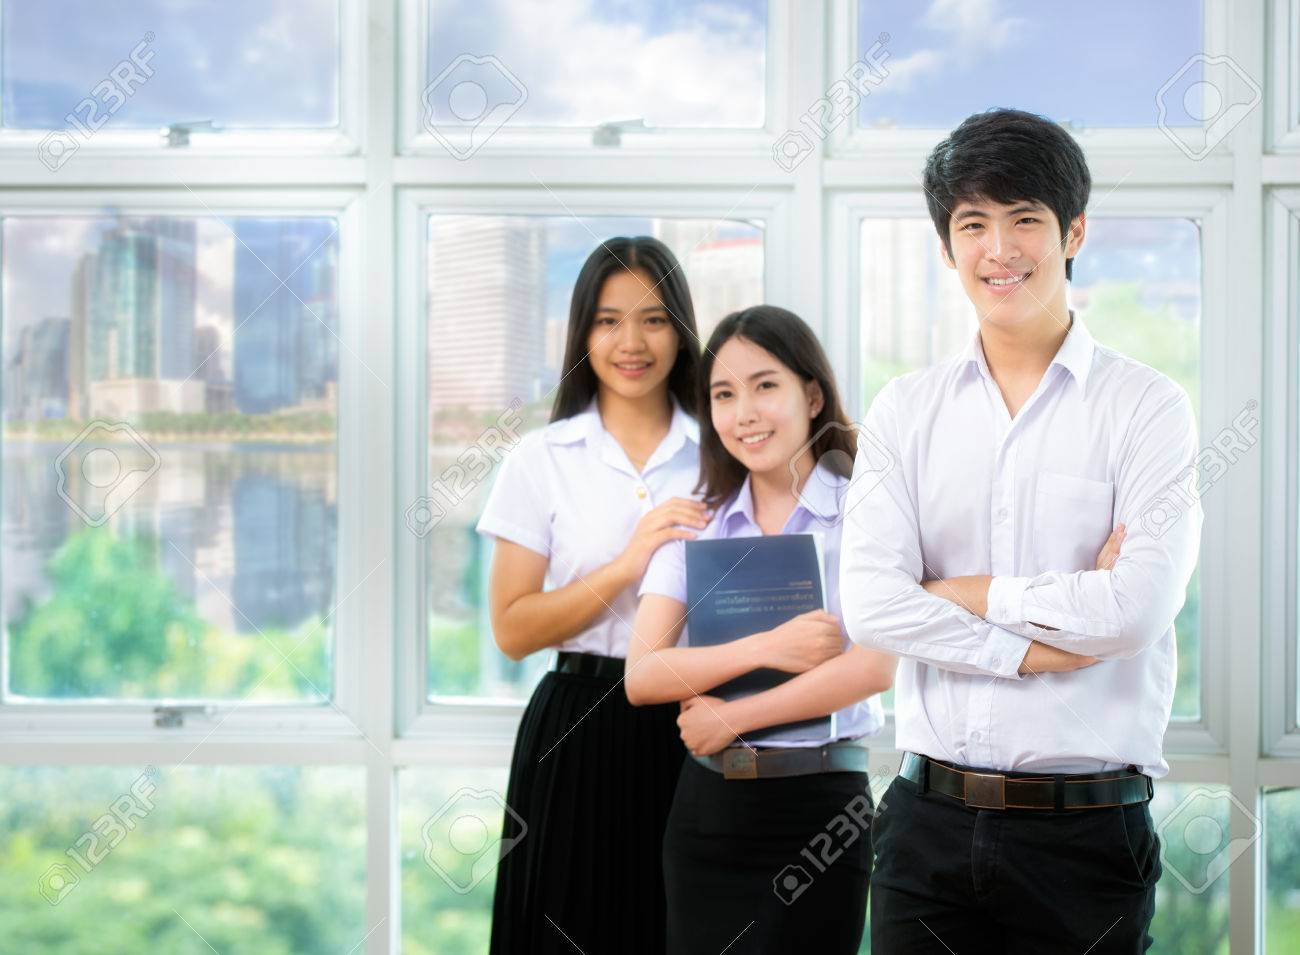 Asia students read in Library with uniform Standard-Bild - 33747898